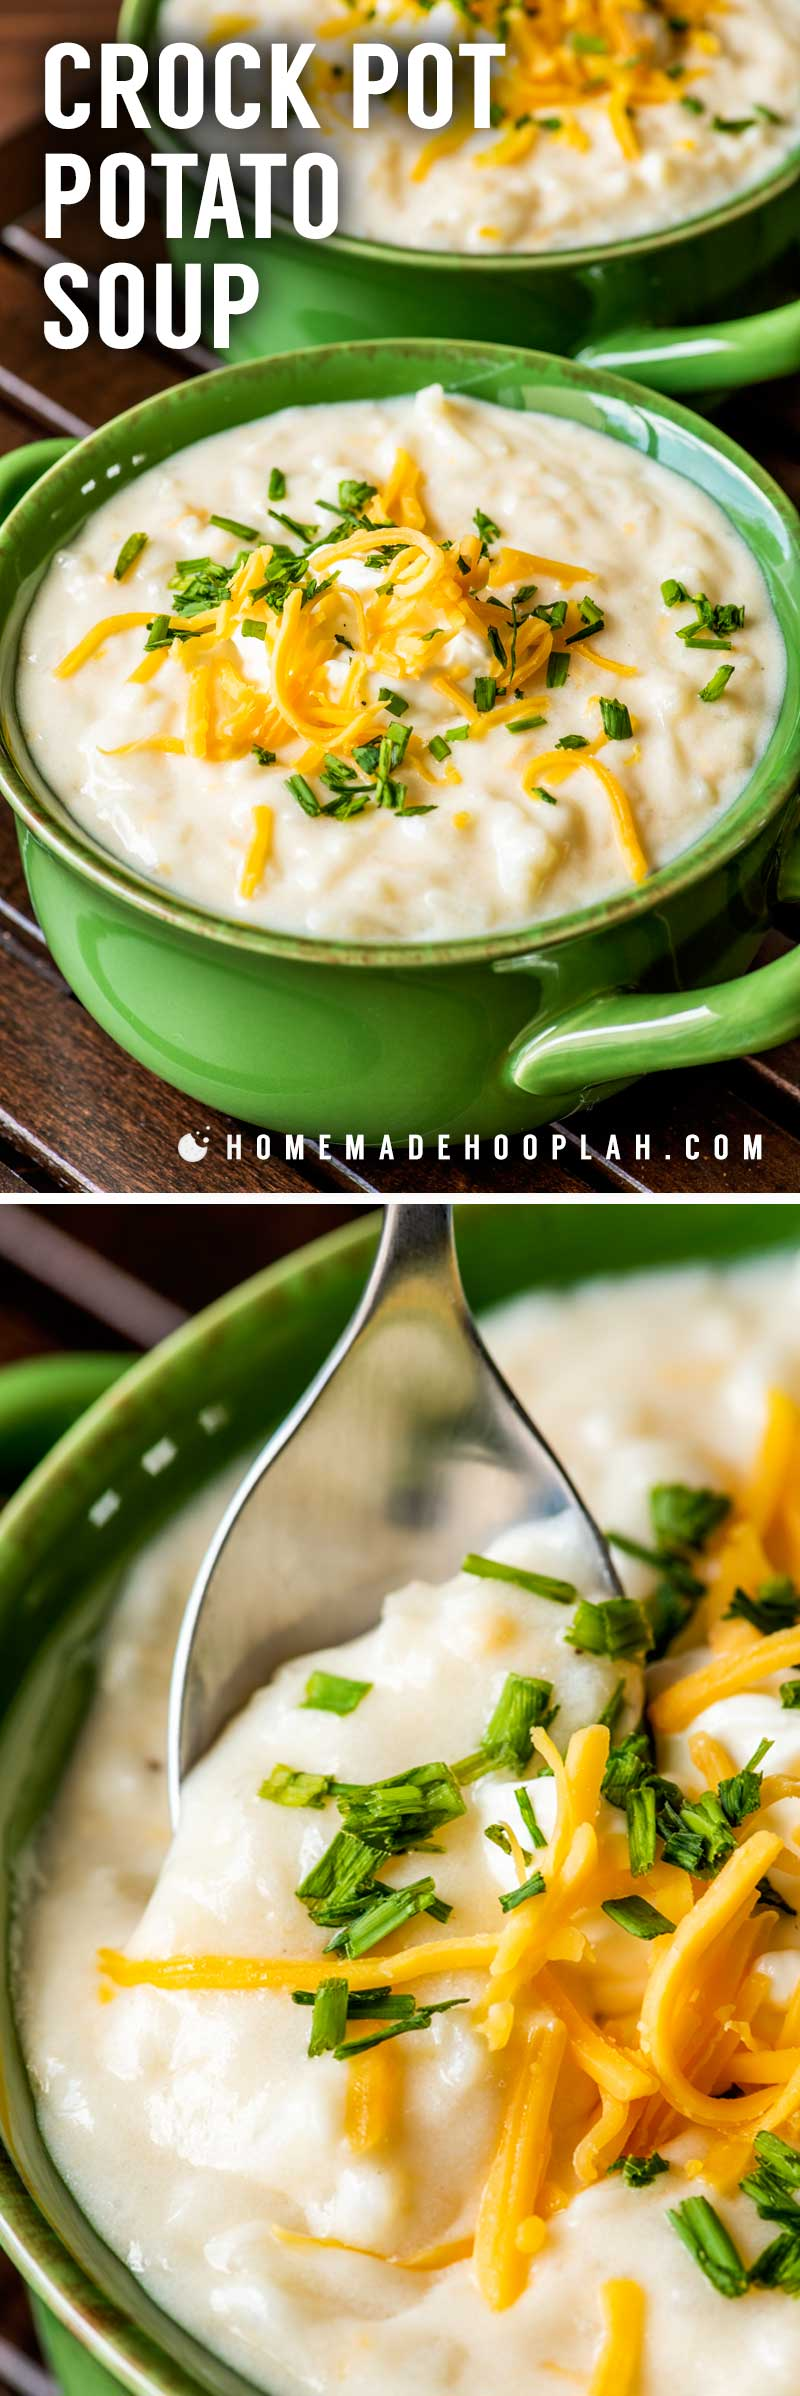 Crock Pot Potato Soup! This ultra thick and creamy crock pot potato soup is made with shredded potatoes, thick broth, and creamy cheese. It's pure comfort food for any time of year! | HomemadeHooplah.com